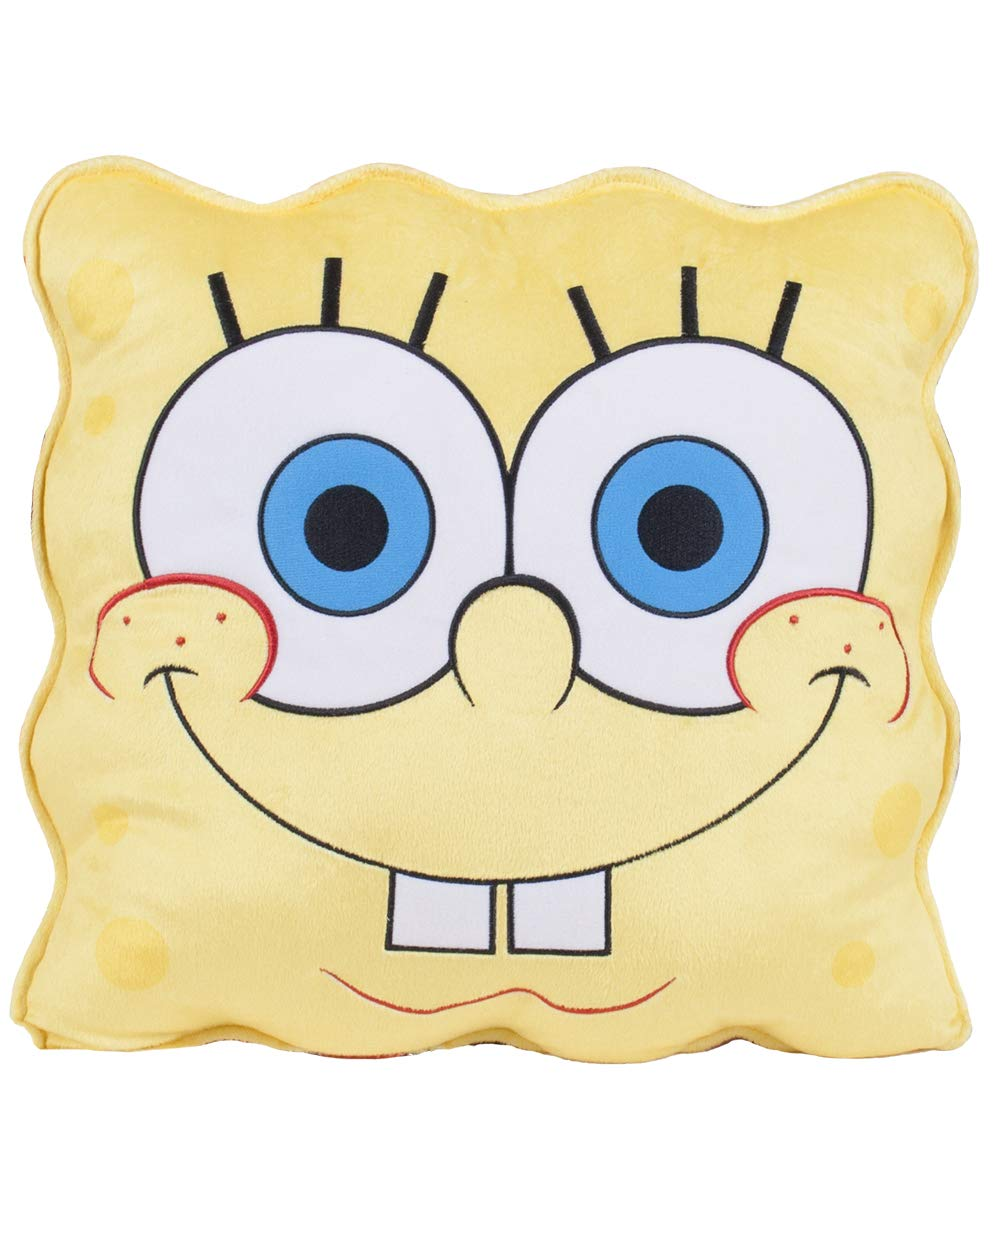 Entertainment Retail Enterprises Spongebob Squarepants and Friends Plush Pillow by Entertainment Retail Enterprises